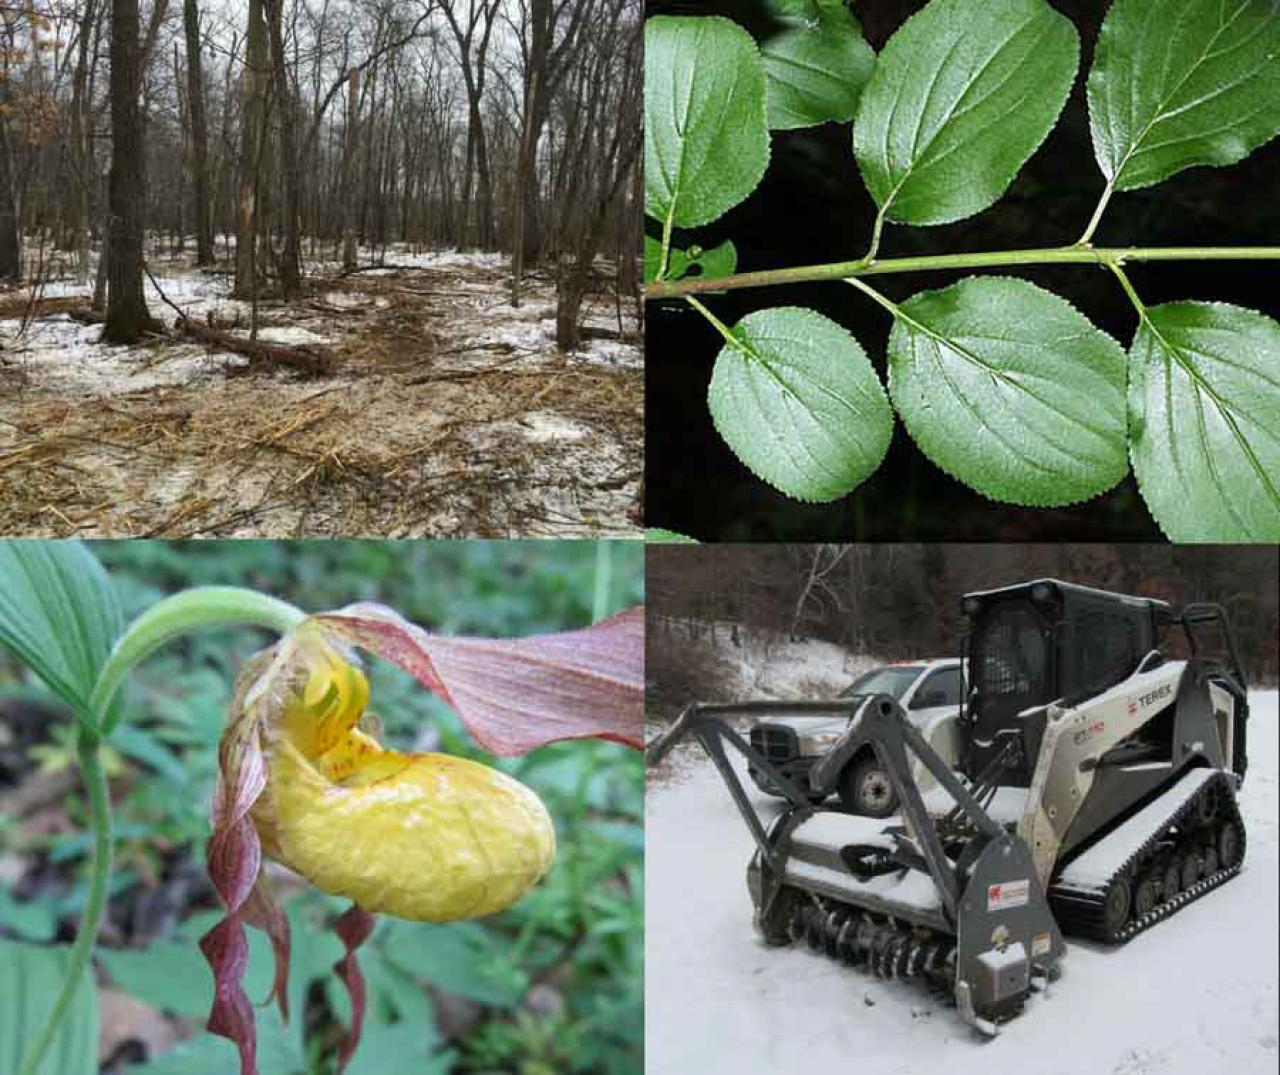 A native ladyslipper plant, a mowed stretch of forest, a glossy buckthorn plant and a bobcat/forestry mower